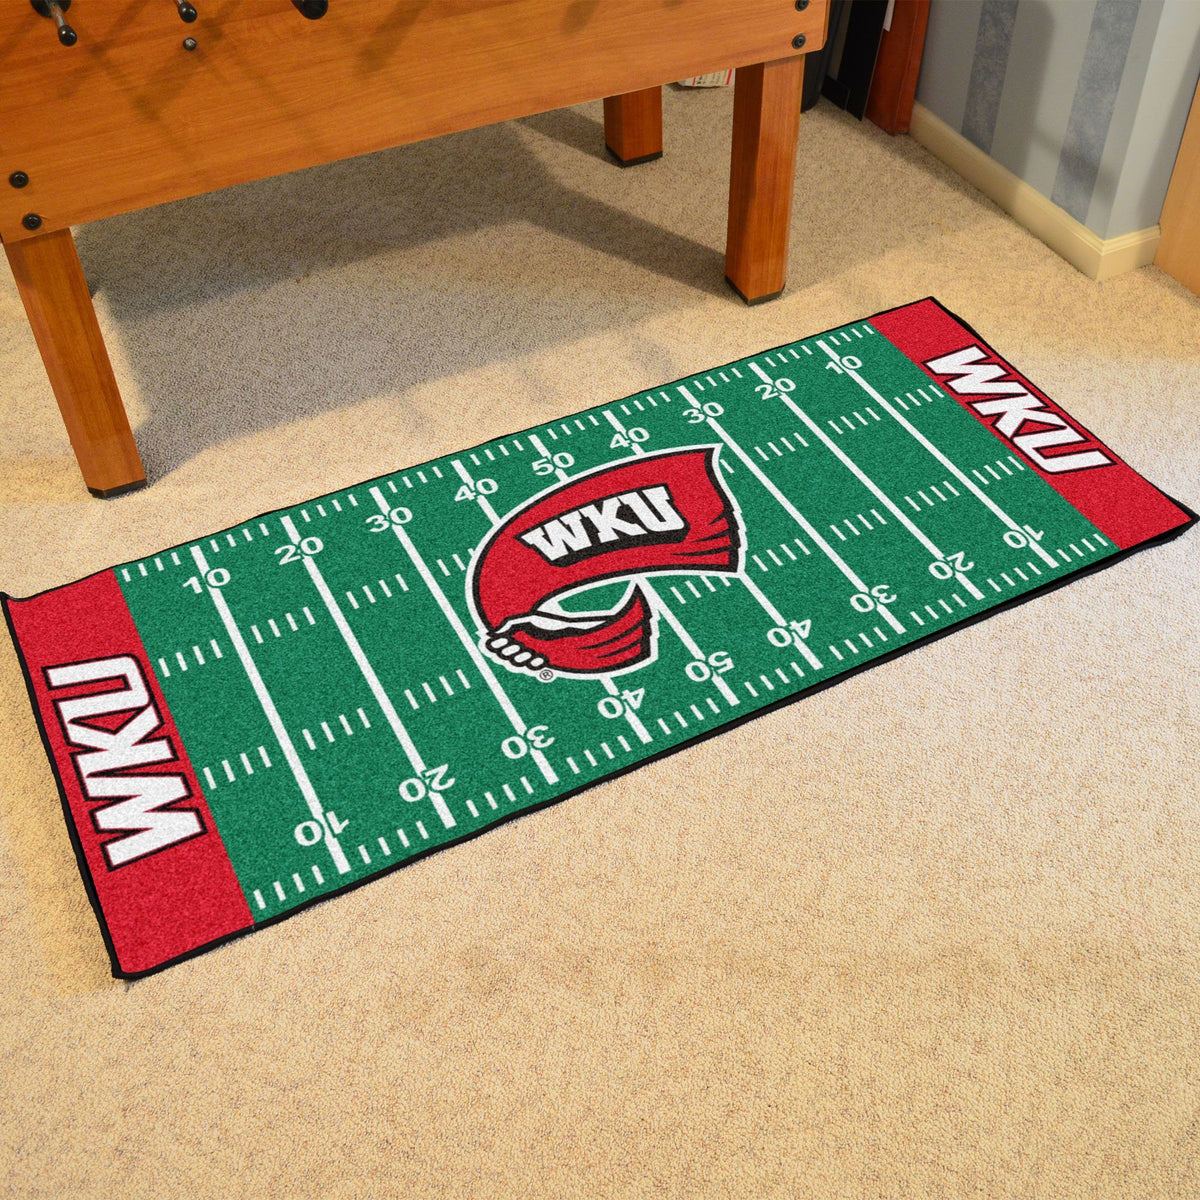 Collegiate - Football Field Runner Collegiate Mats, Rectangular Mats, Football Field Runner, Collegiate, Home Fan Mats Western Kentucky